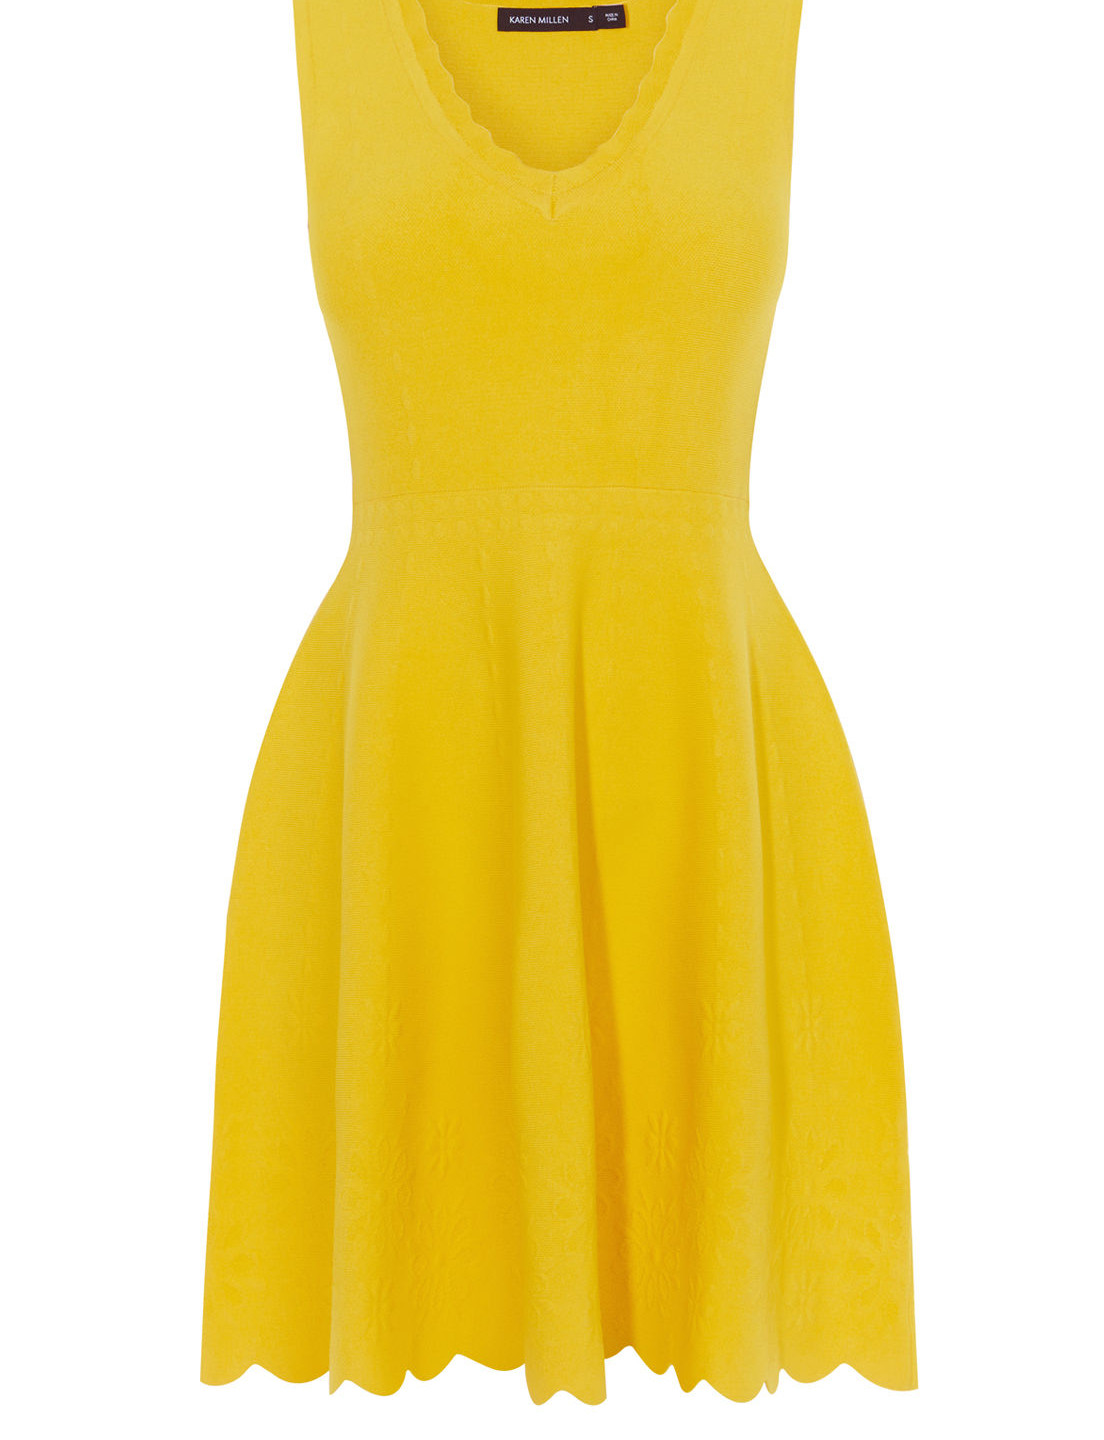 When life gives you lemons... FIT AND FLARE DRESS £148.80, KAREN MILLEN AT DE GRUCHY